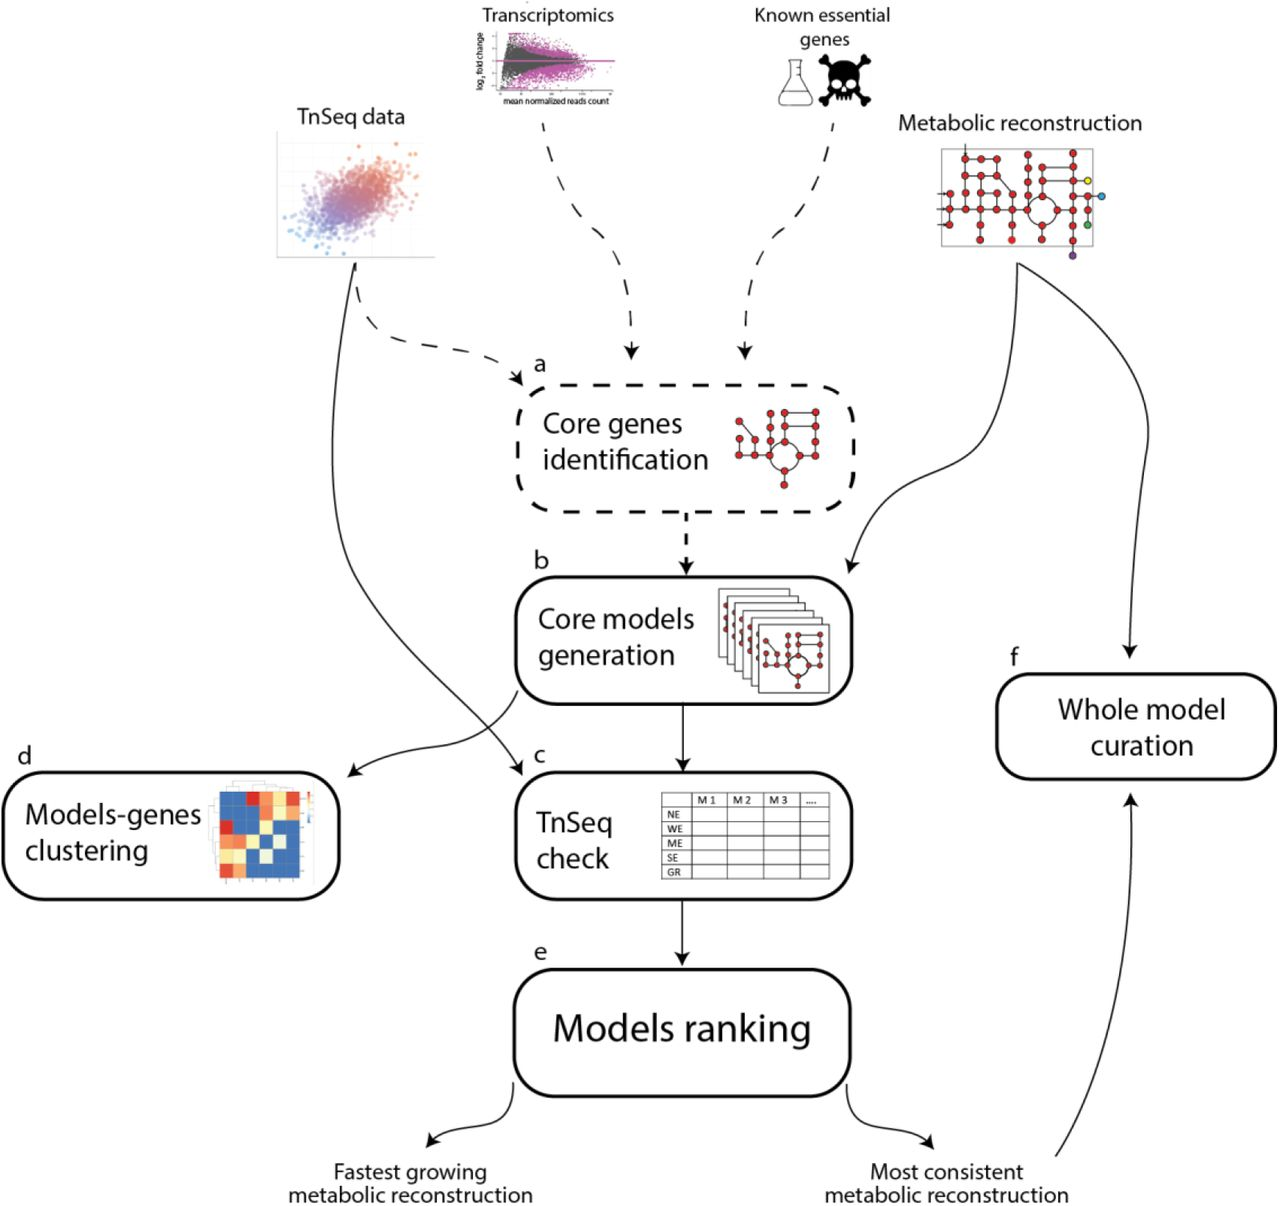 Tn-Core: context-specific reconstruction of core metabolic models